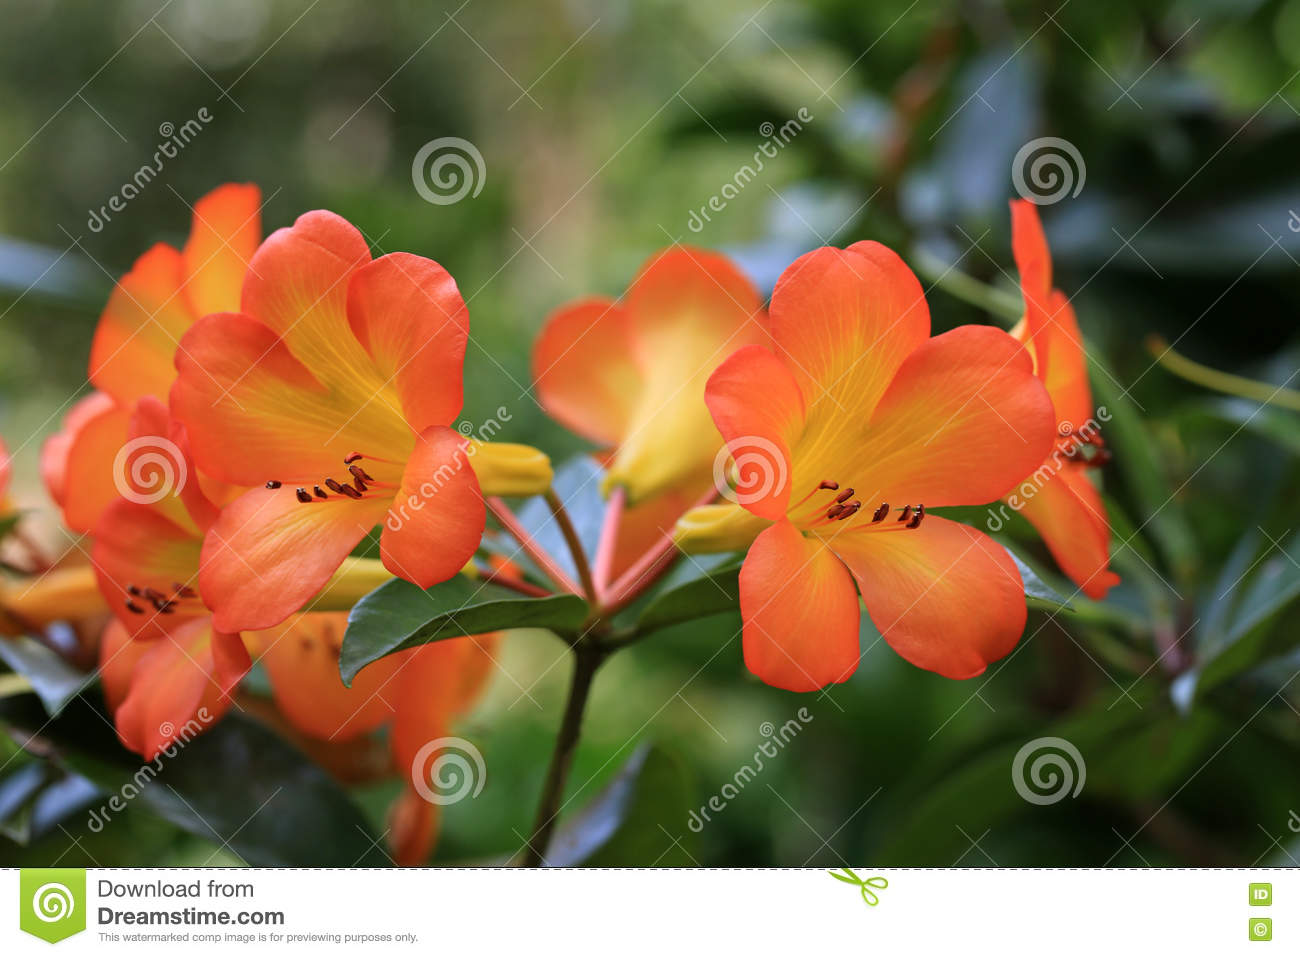 tropical rhododendron flowers stock photo  image, Beautiful flower